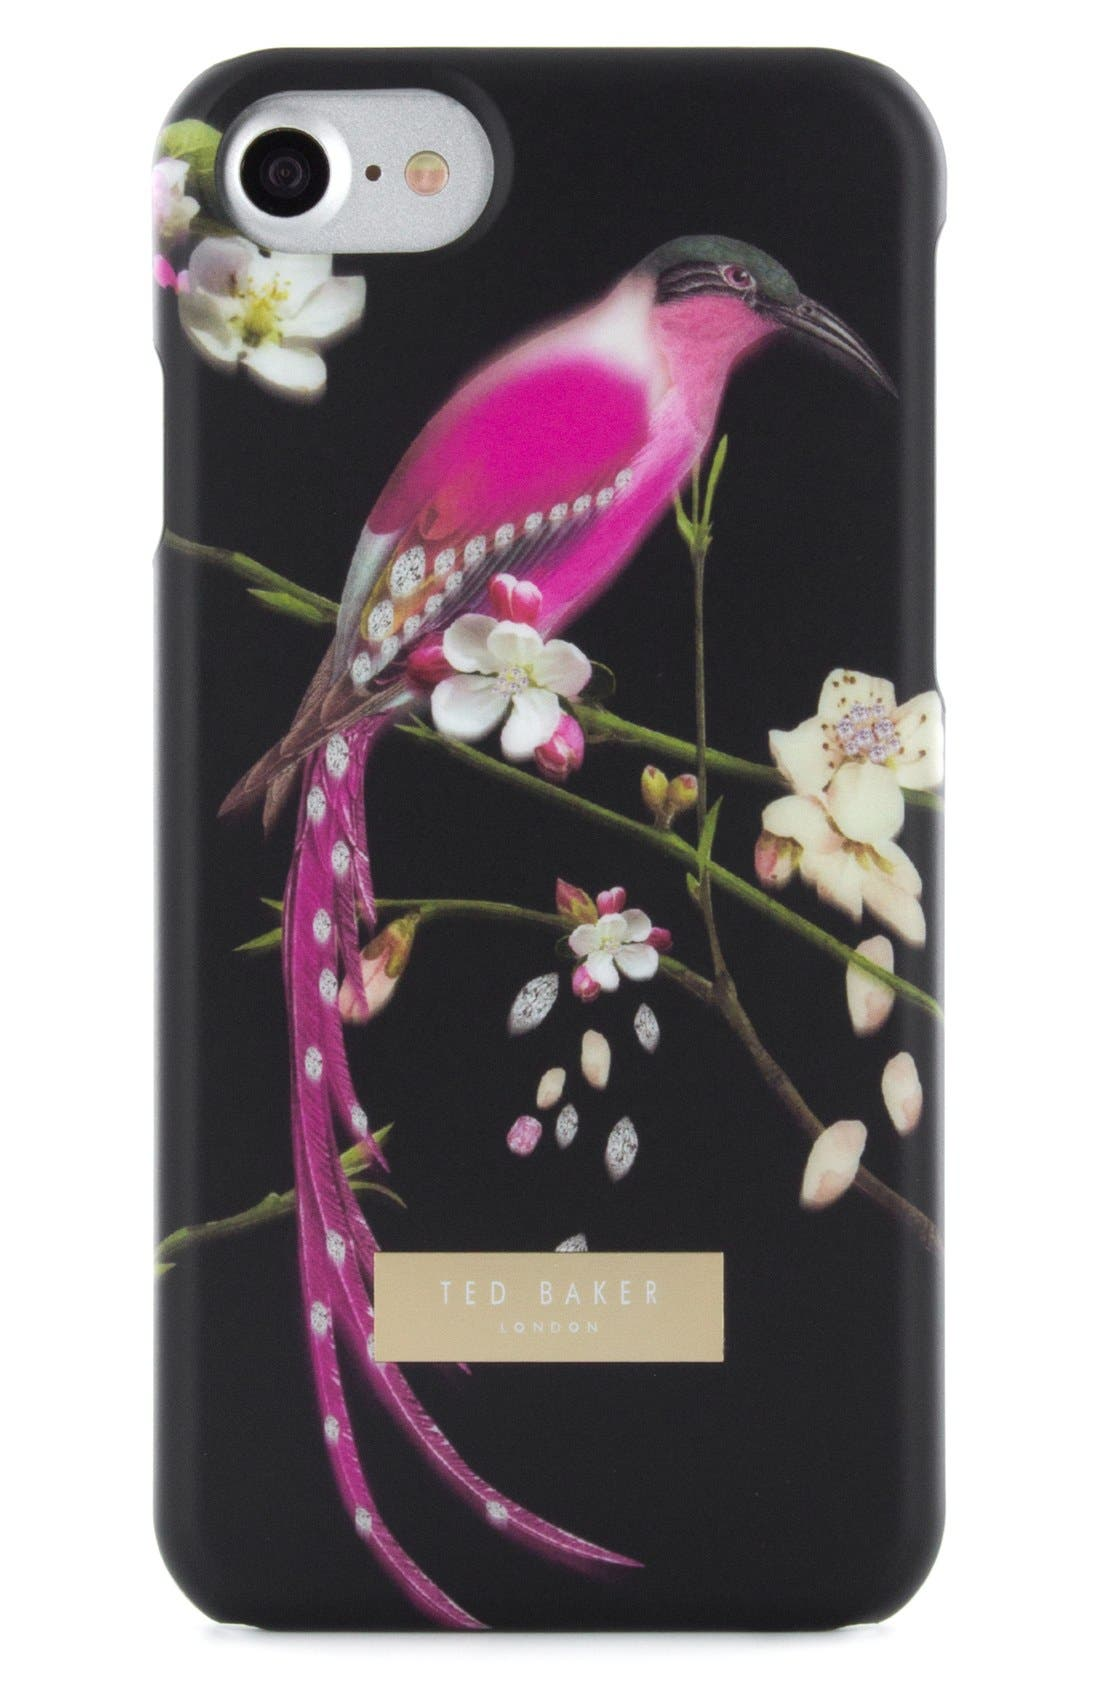 Alternate Image 1 Selected - Ted Baker London Mireill iPhone 6/6s/7/8 Case